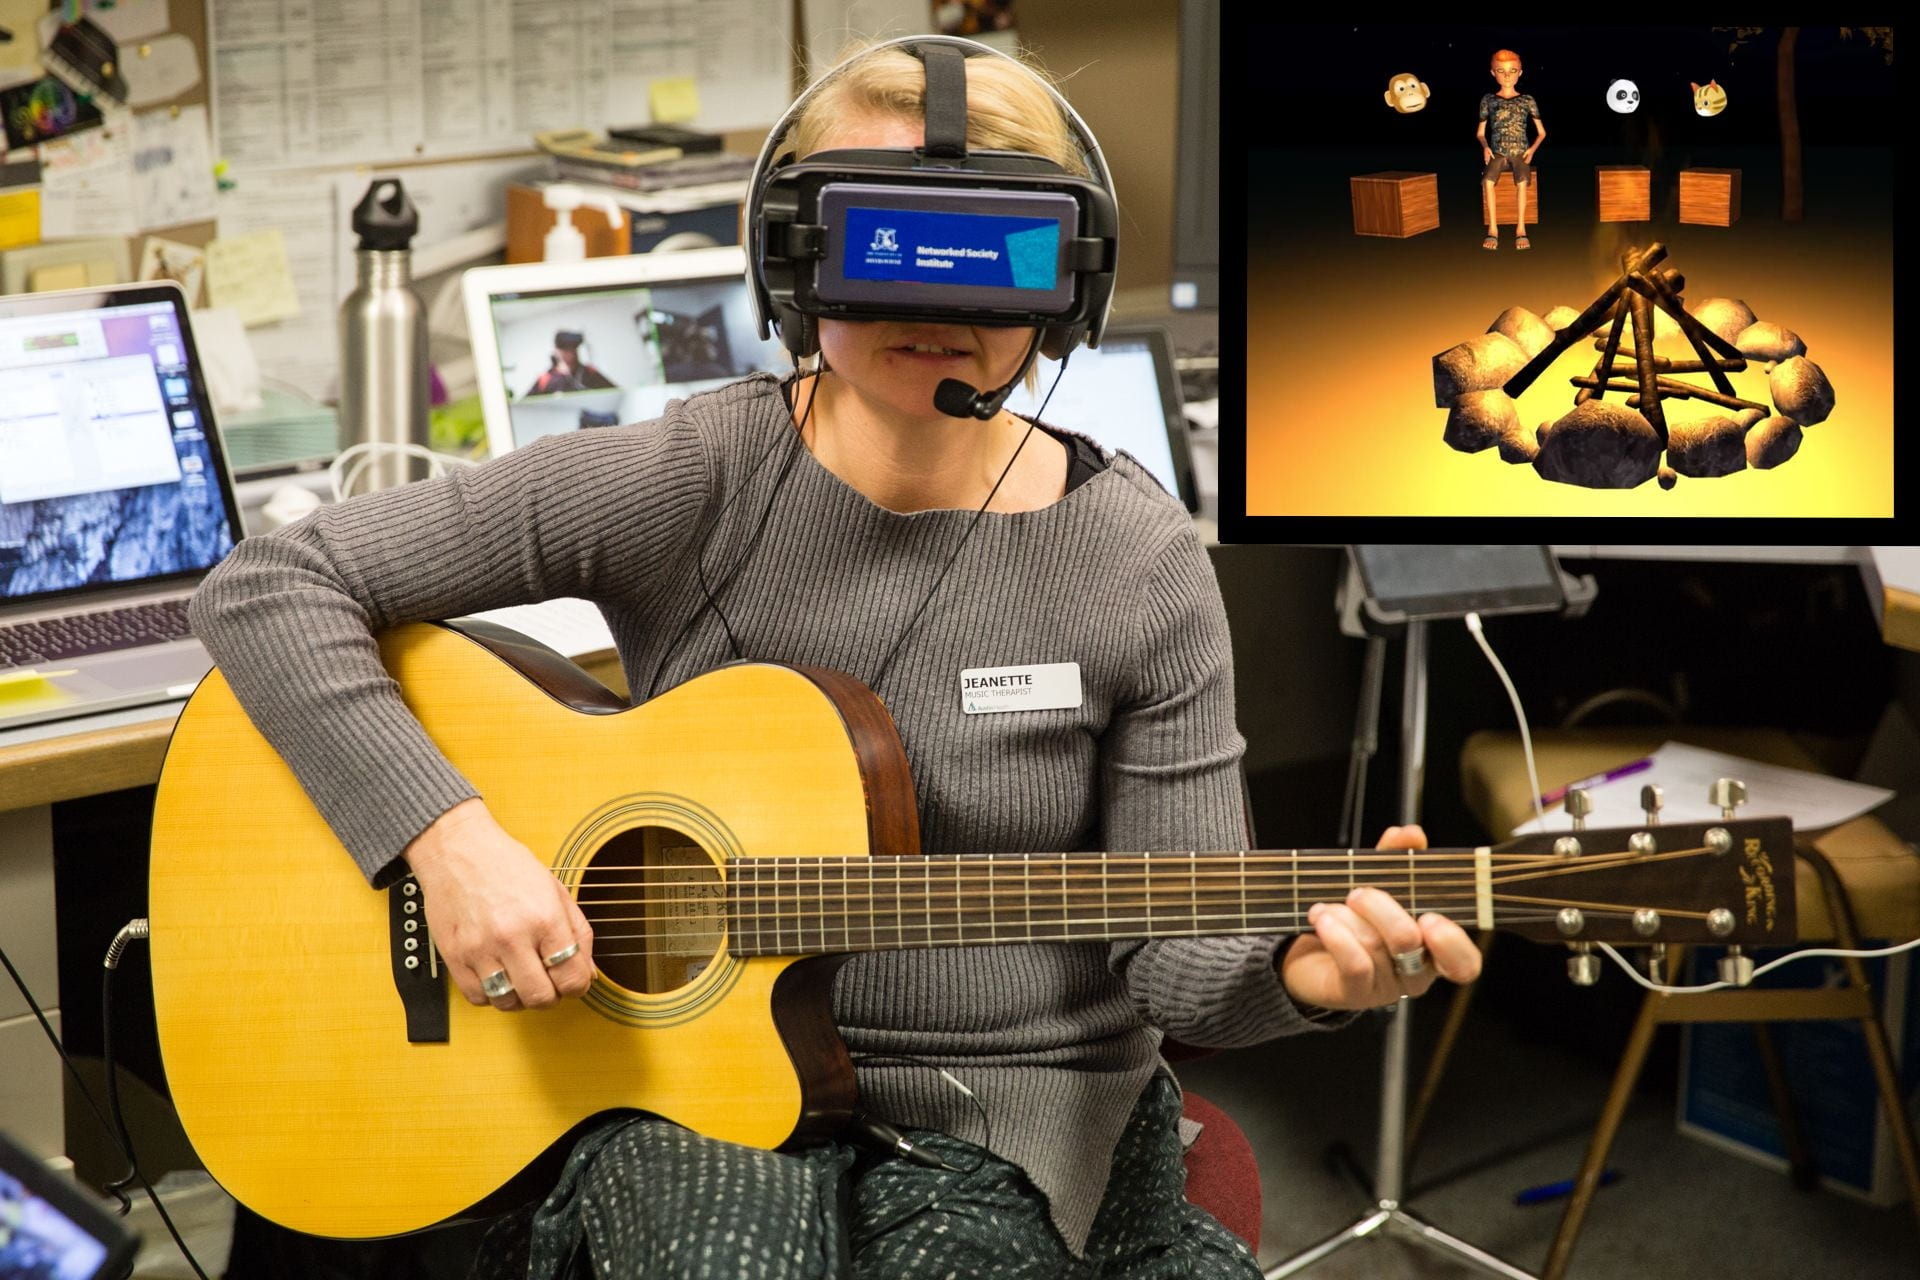 Music therapist playing guitar and singing whilst wearing virtual reality headset